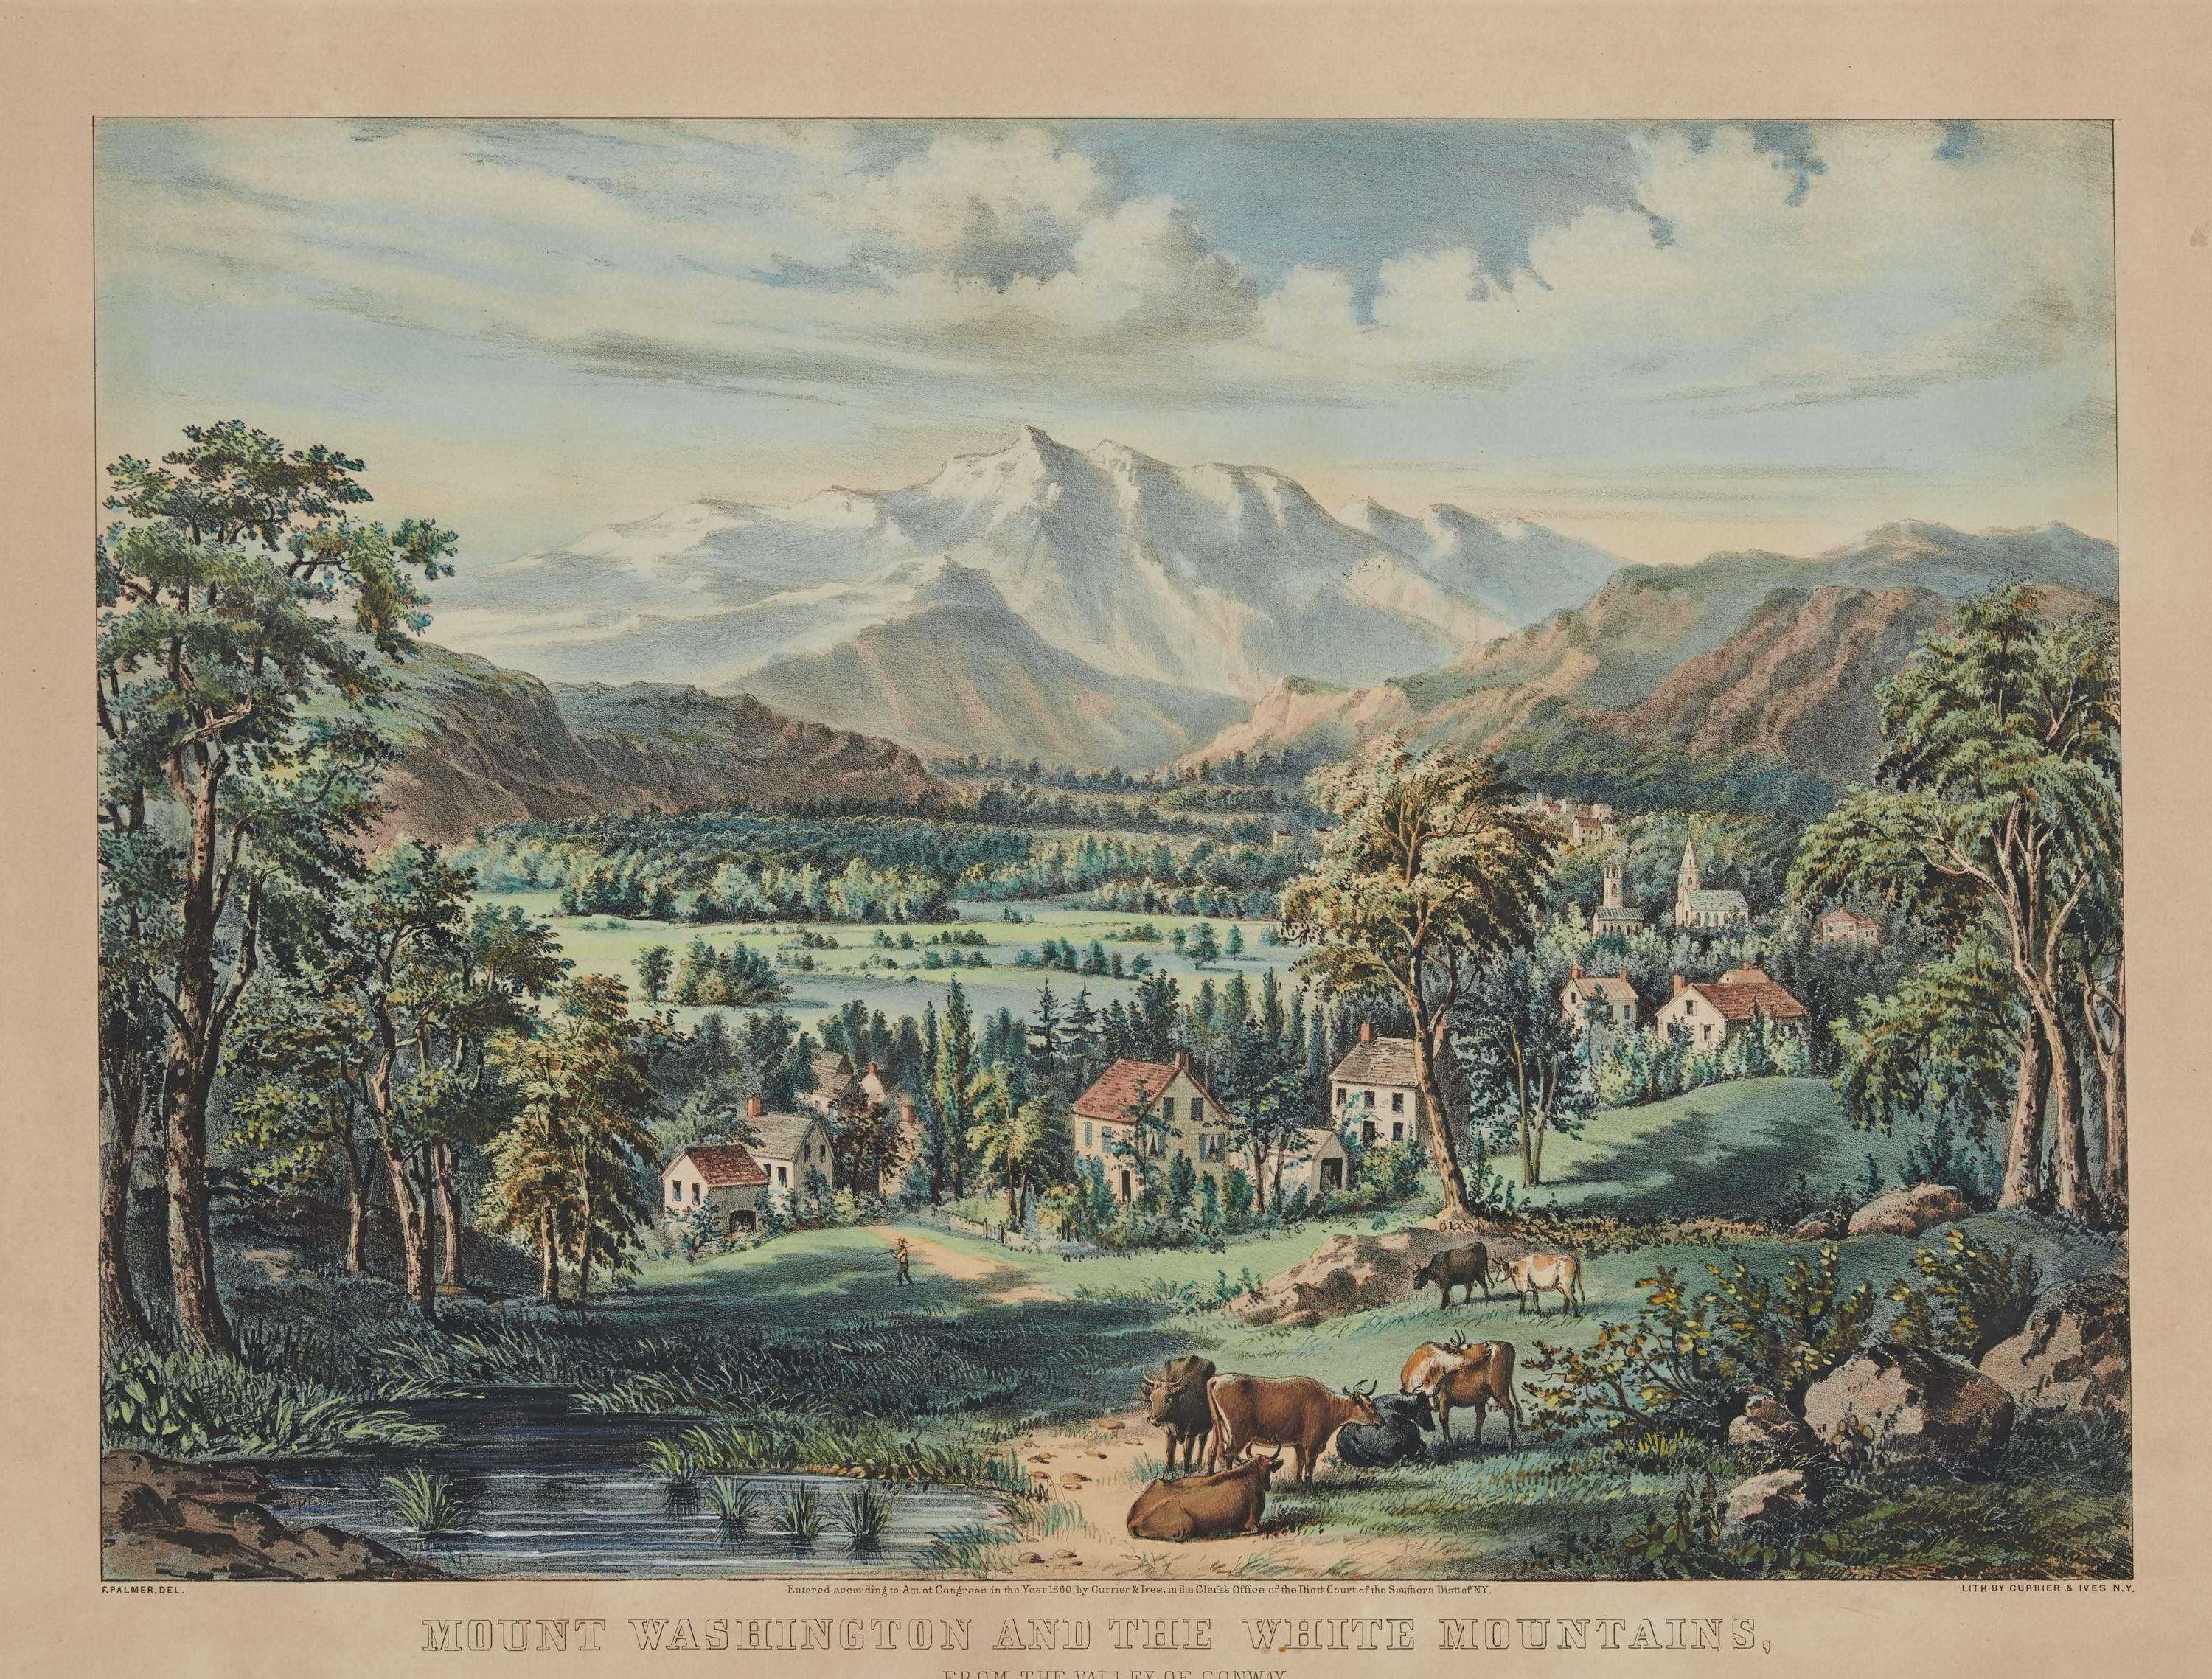 CURRIER & IVES , (American, 19th century), Mount Washington and the White Mountains from the Valley of Conway, hand colored lithograph, 14 3/4 x 10 1/4 in., frame: 23 x 28 1/2 in.